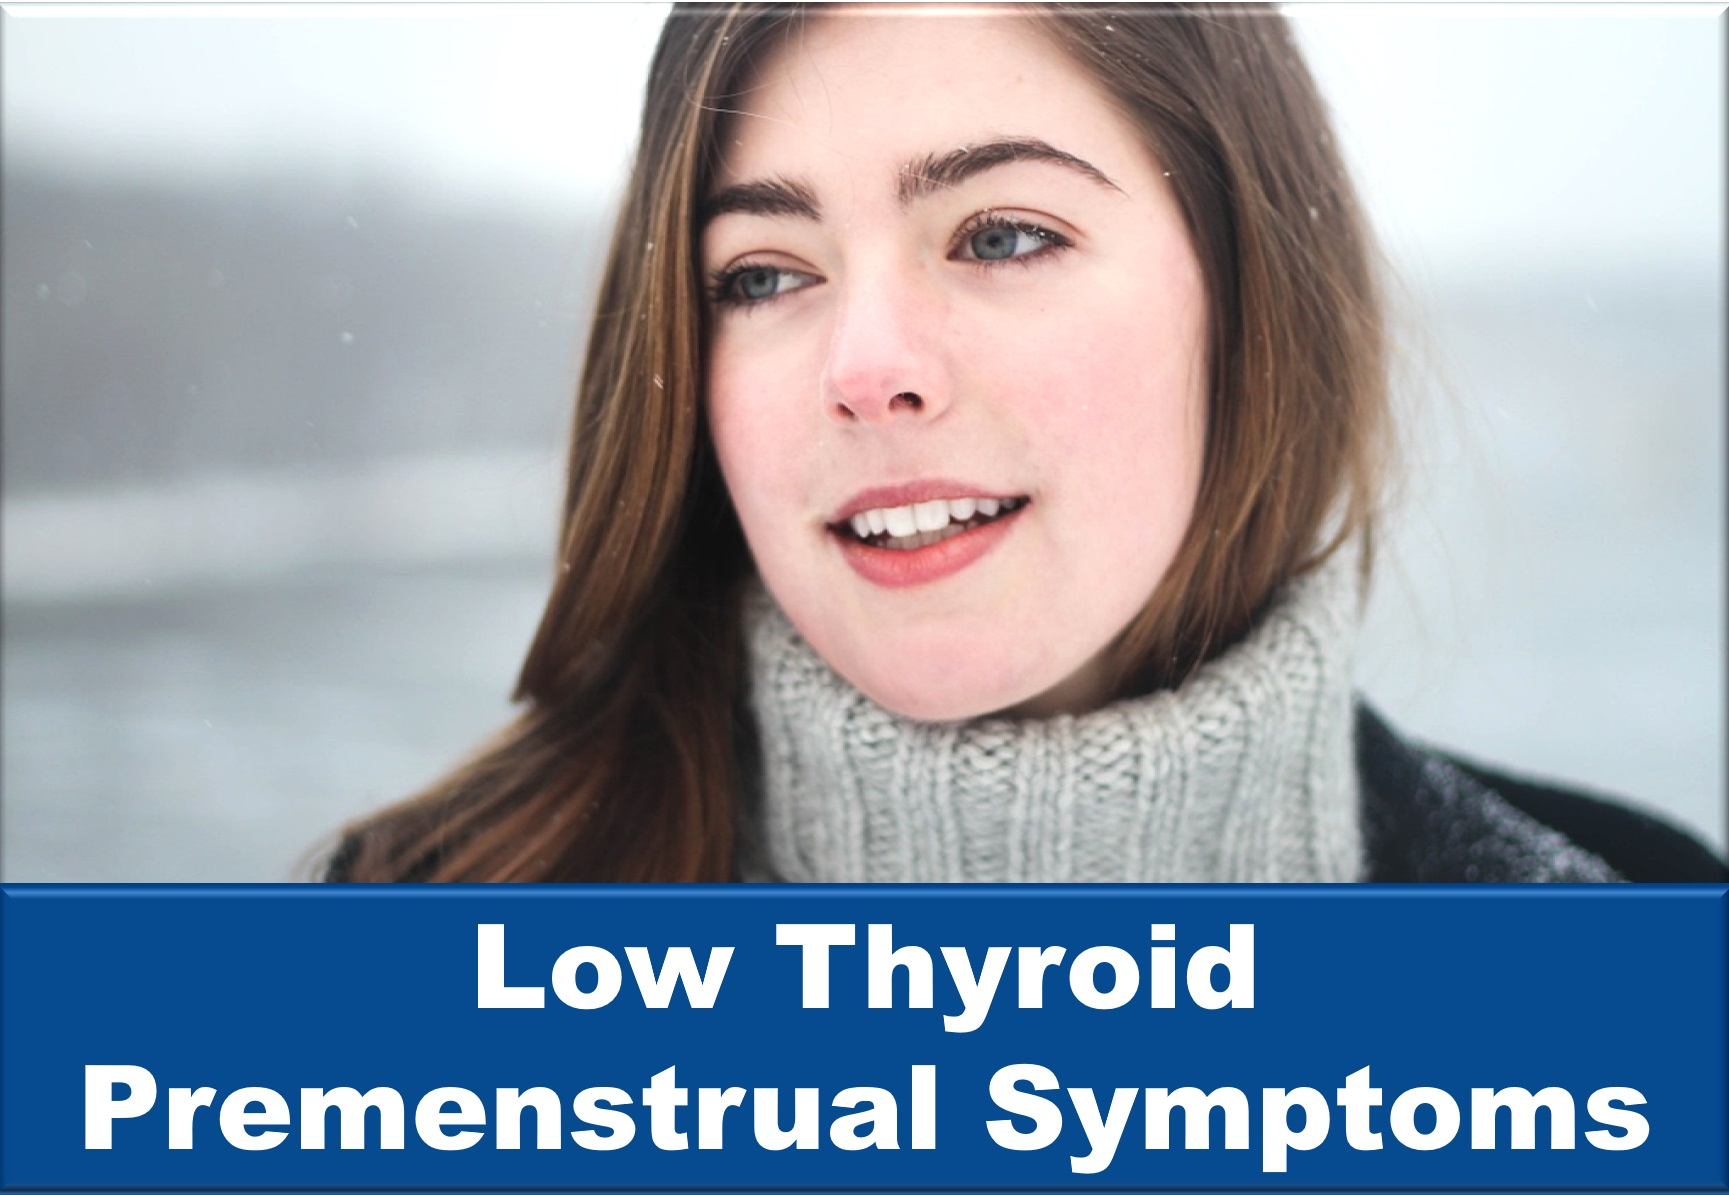 Low Thyroid (Hypothyroid) Premenstrual Symptoms